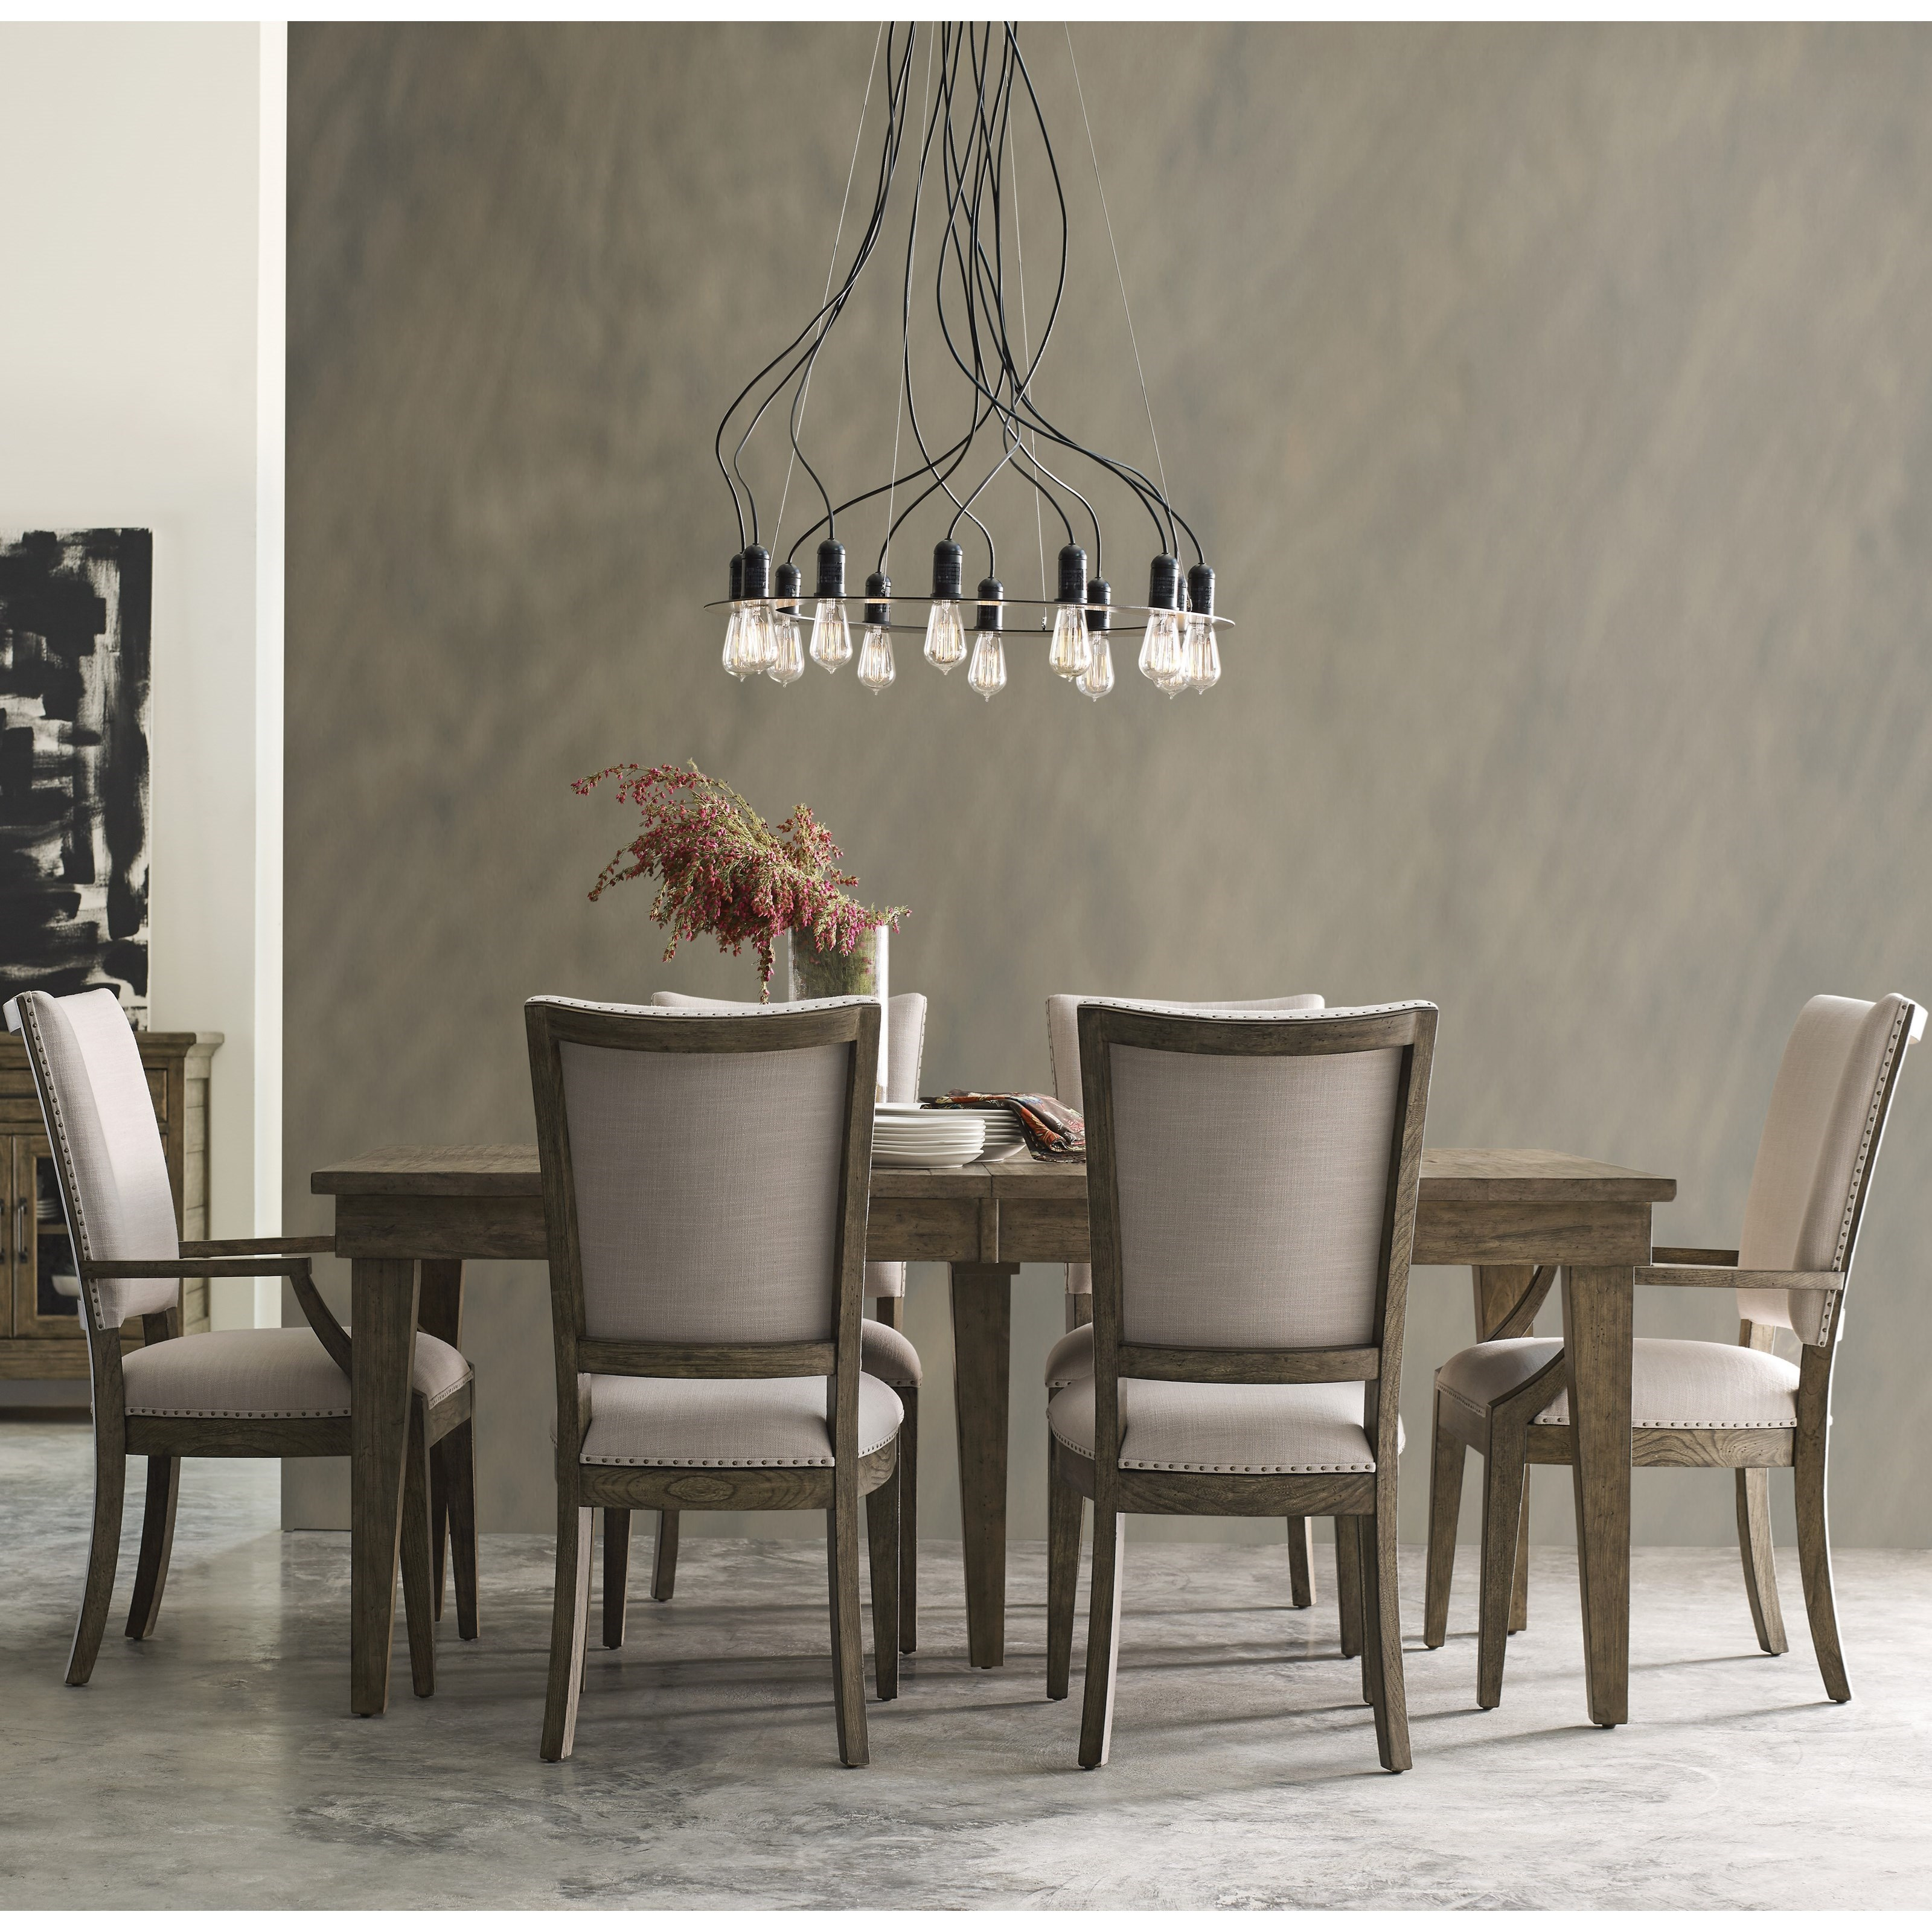 Plank Road 7 Pc Dining Set w/ Rankin Table by Kincaid Furniture at Northeast Factory Direct